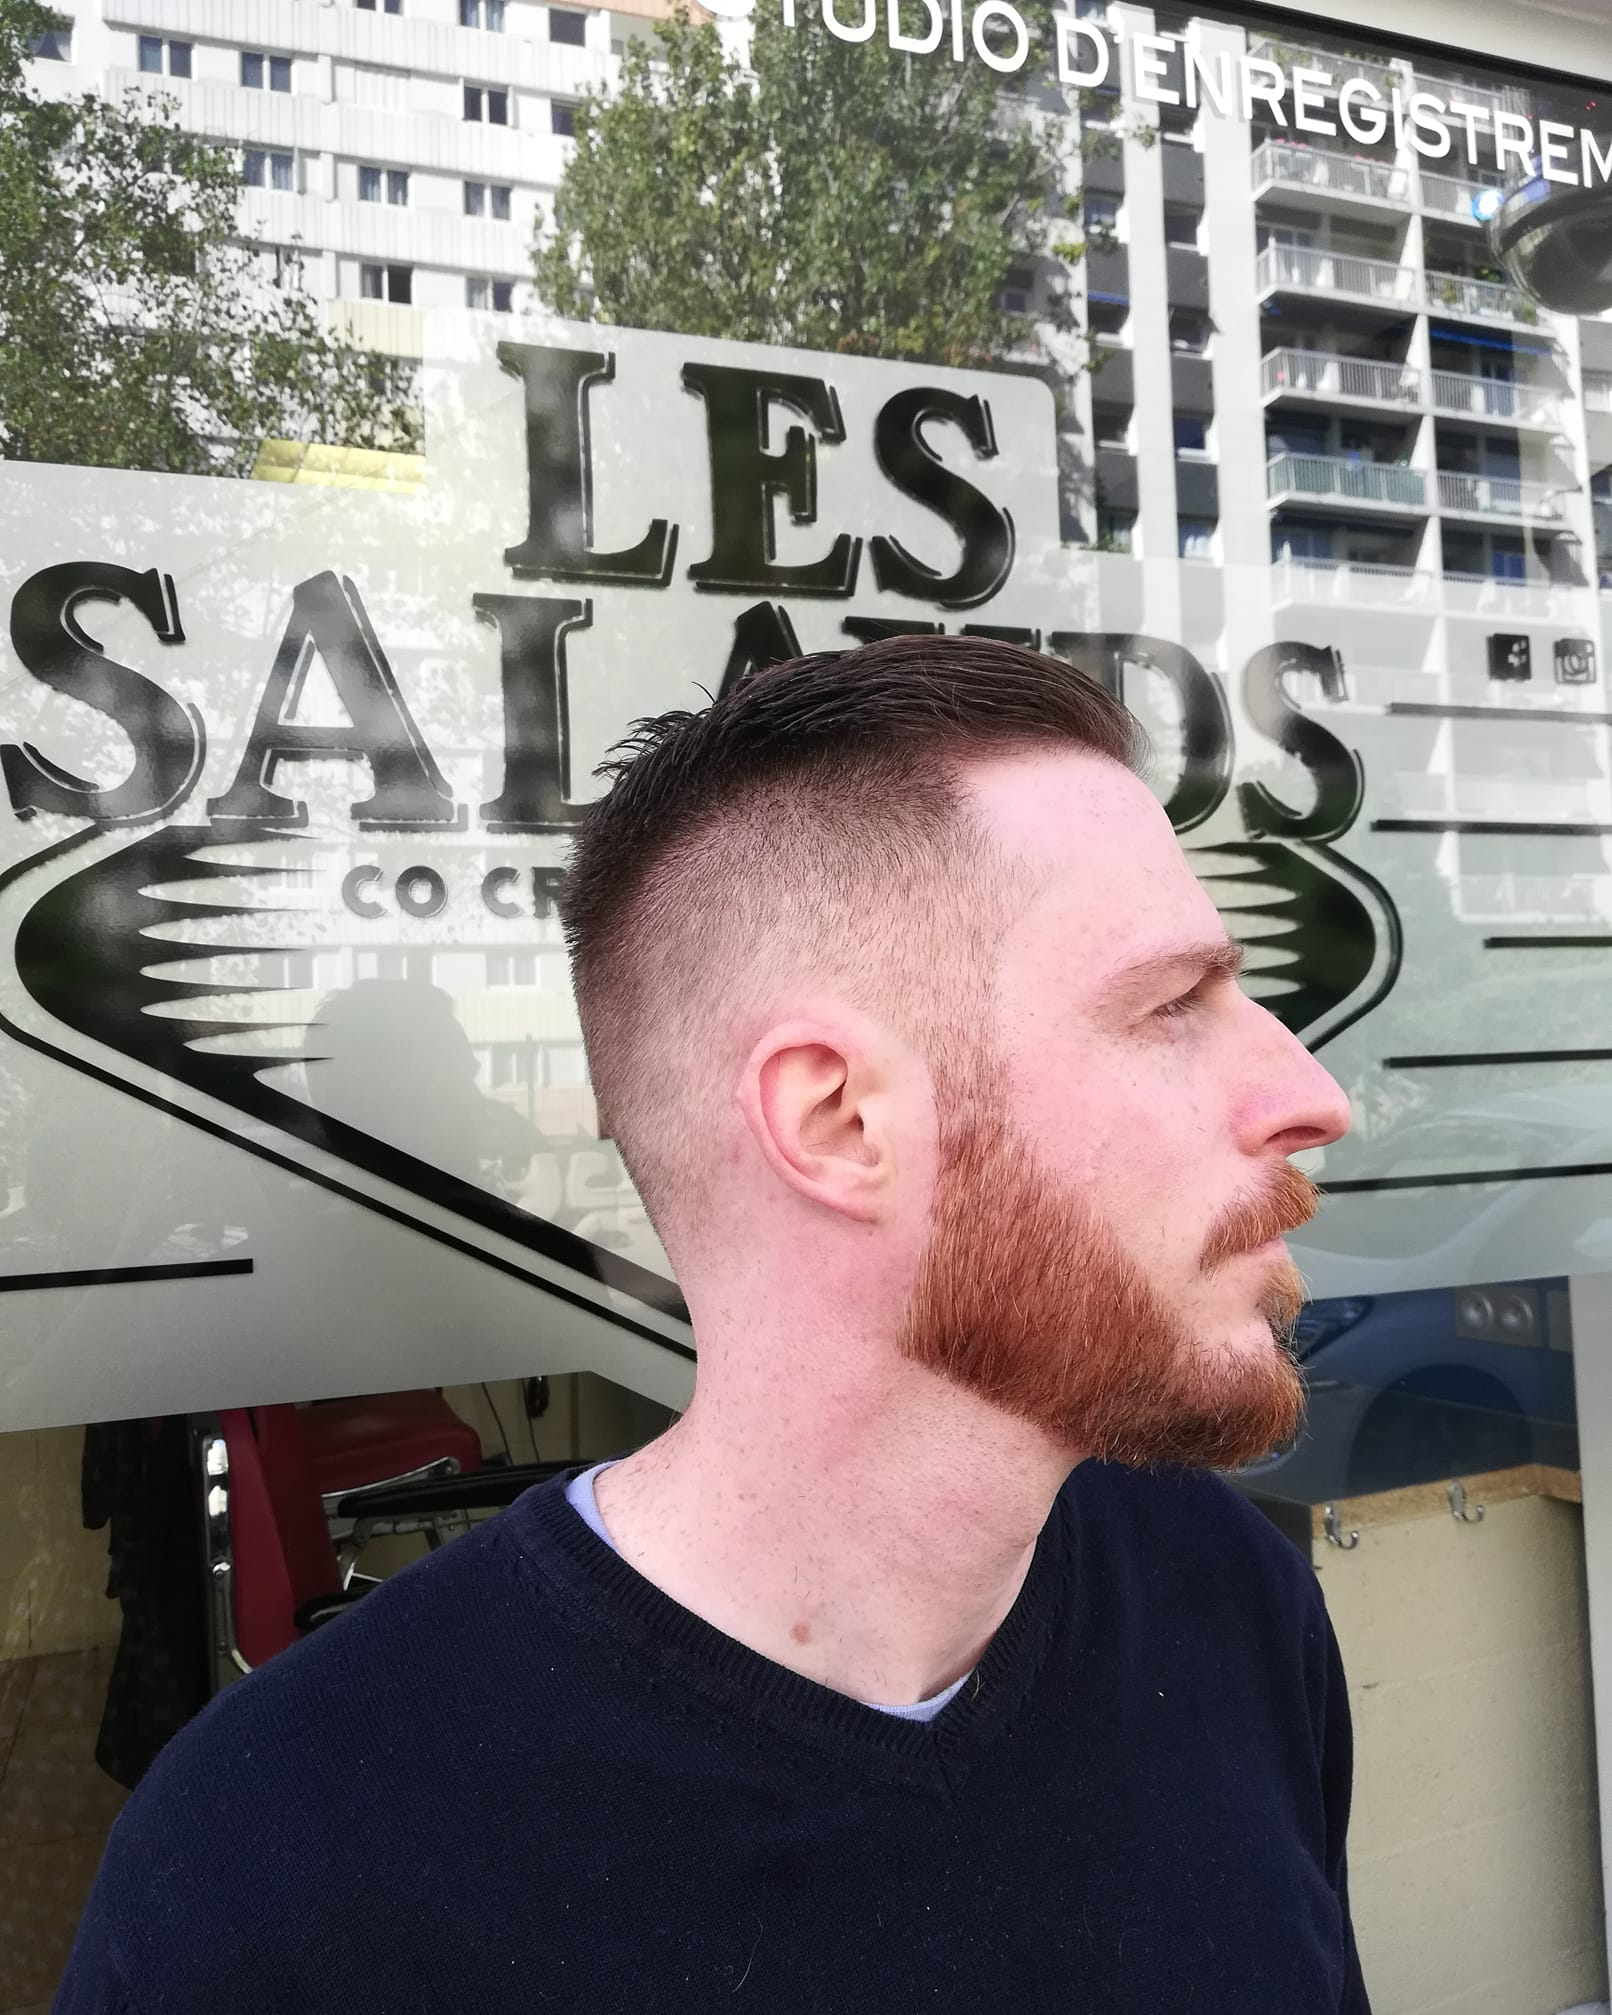 Coiffeur Homme Barbier Paris 13 Co Creative Factory Les Salauds